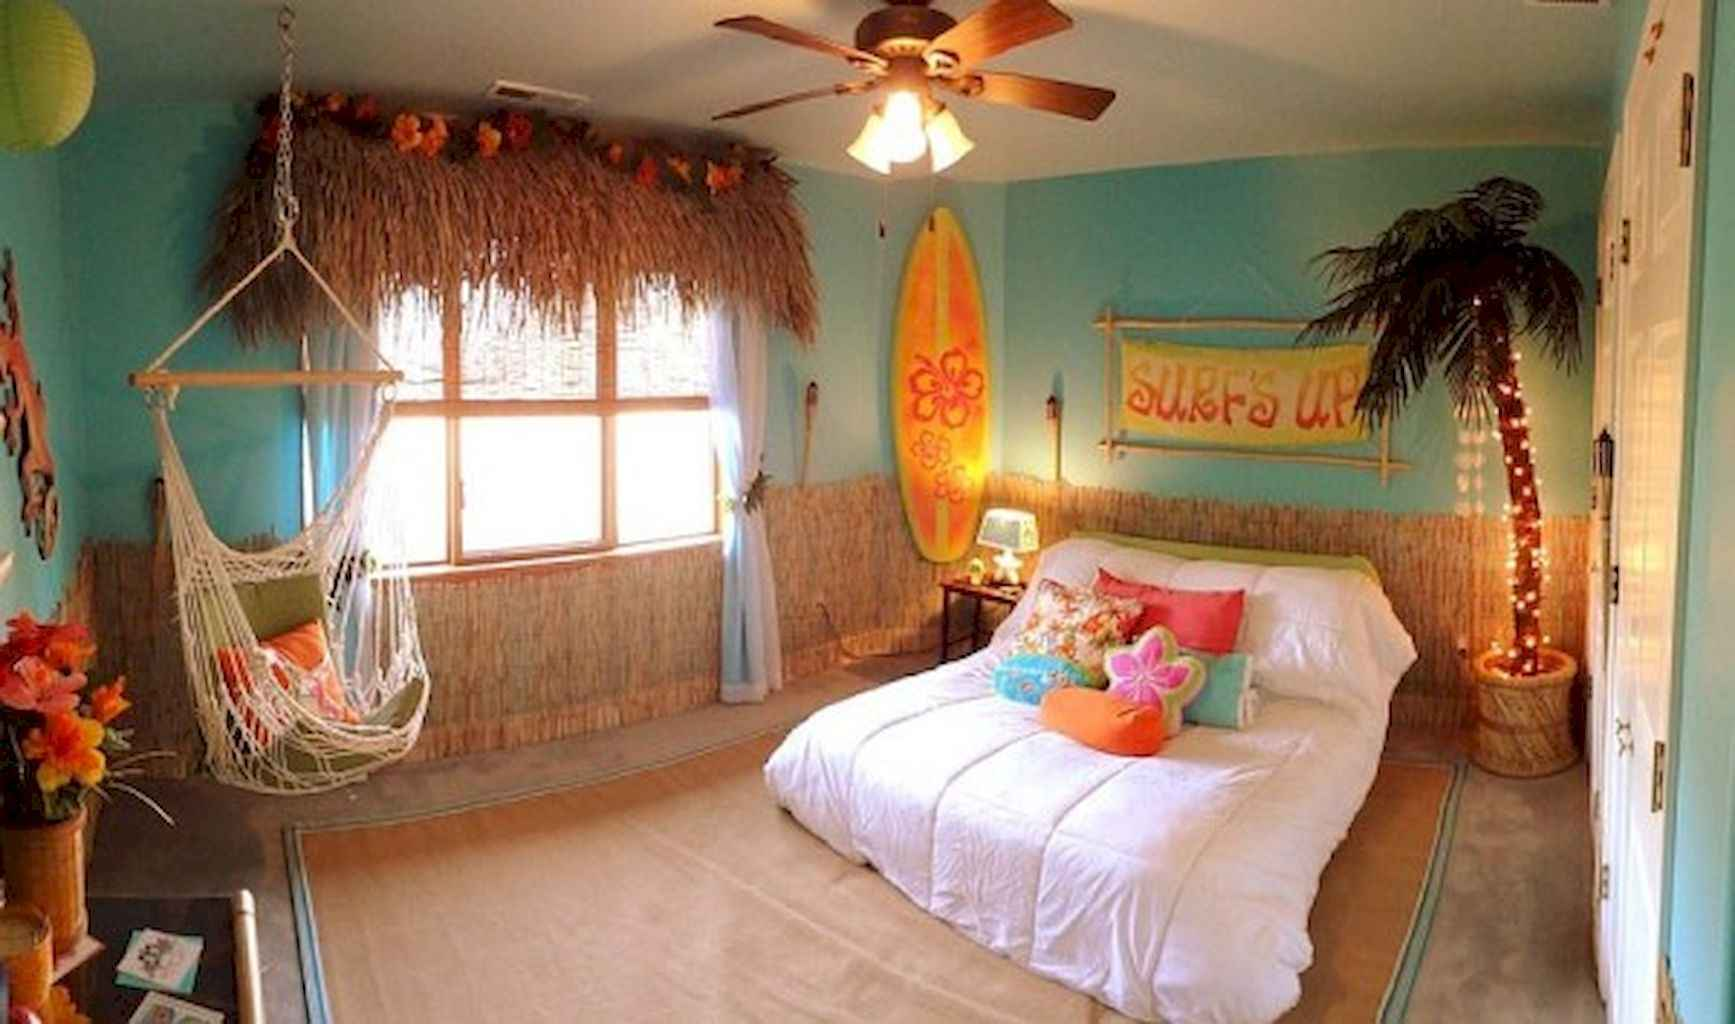 Awesome ideas bedroom for kids (58)